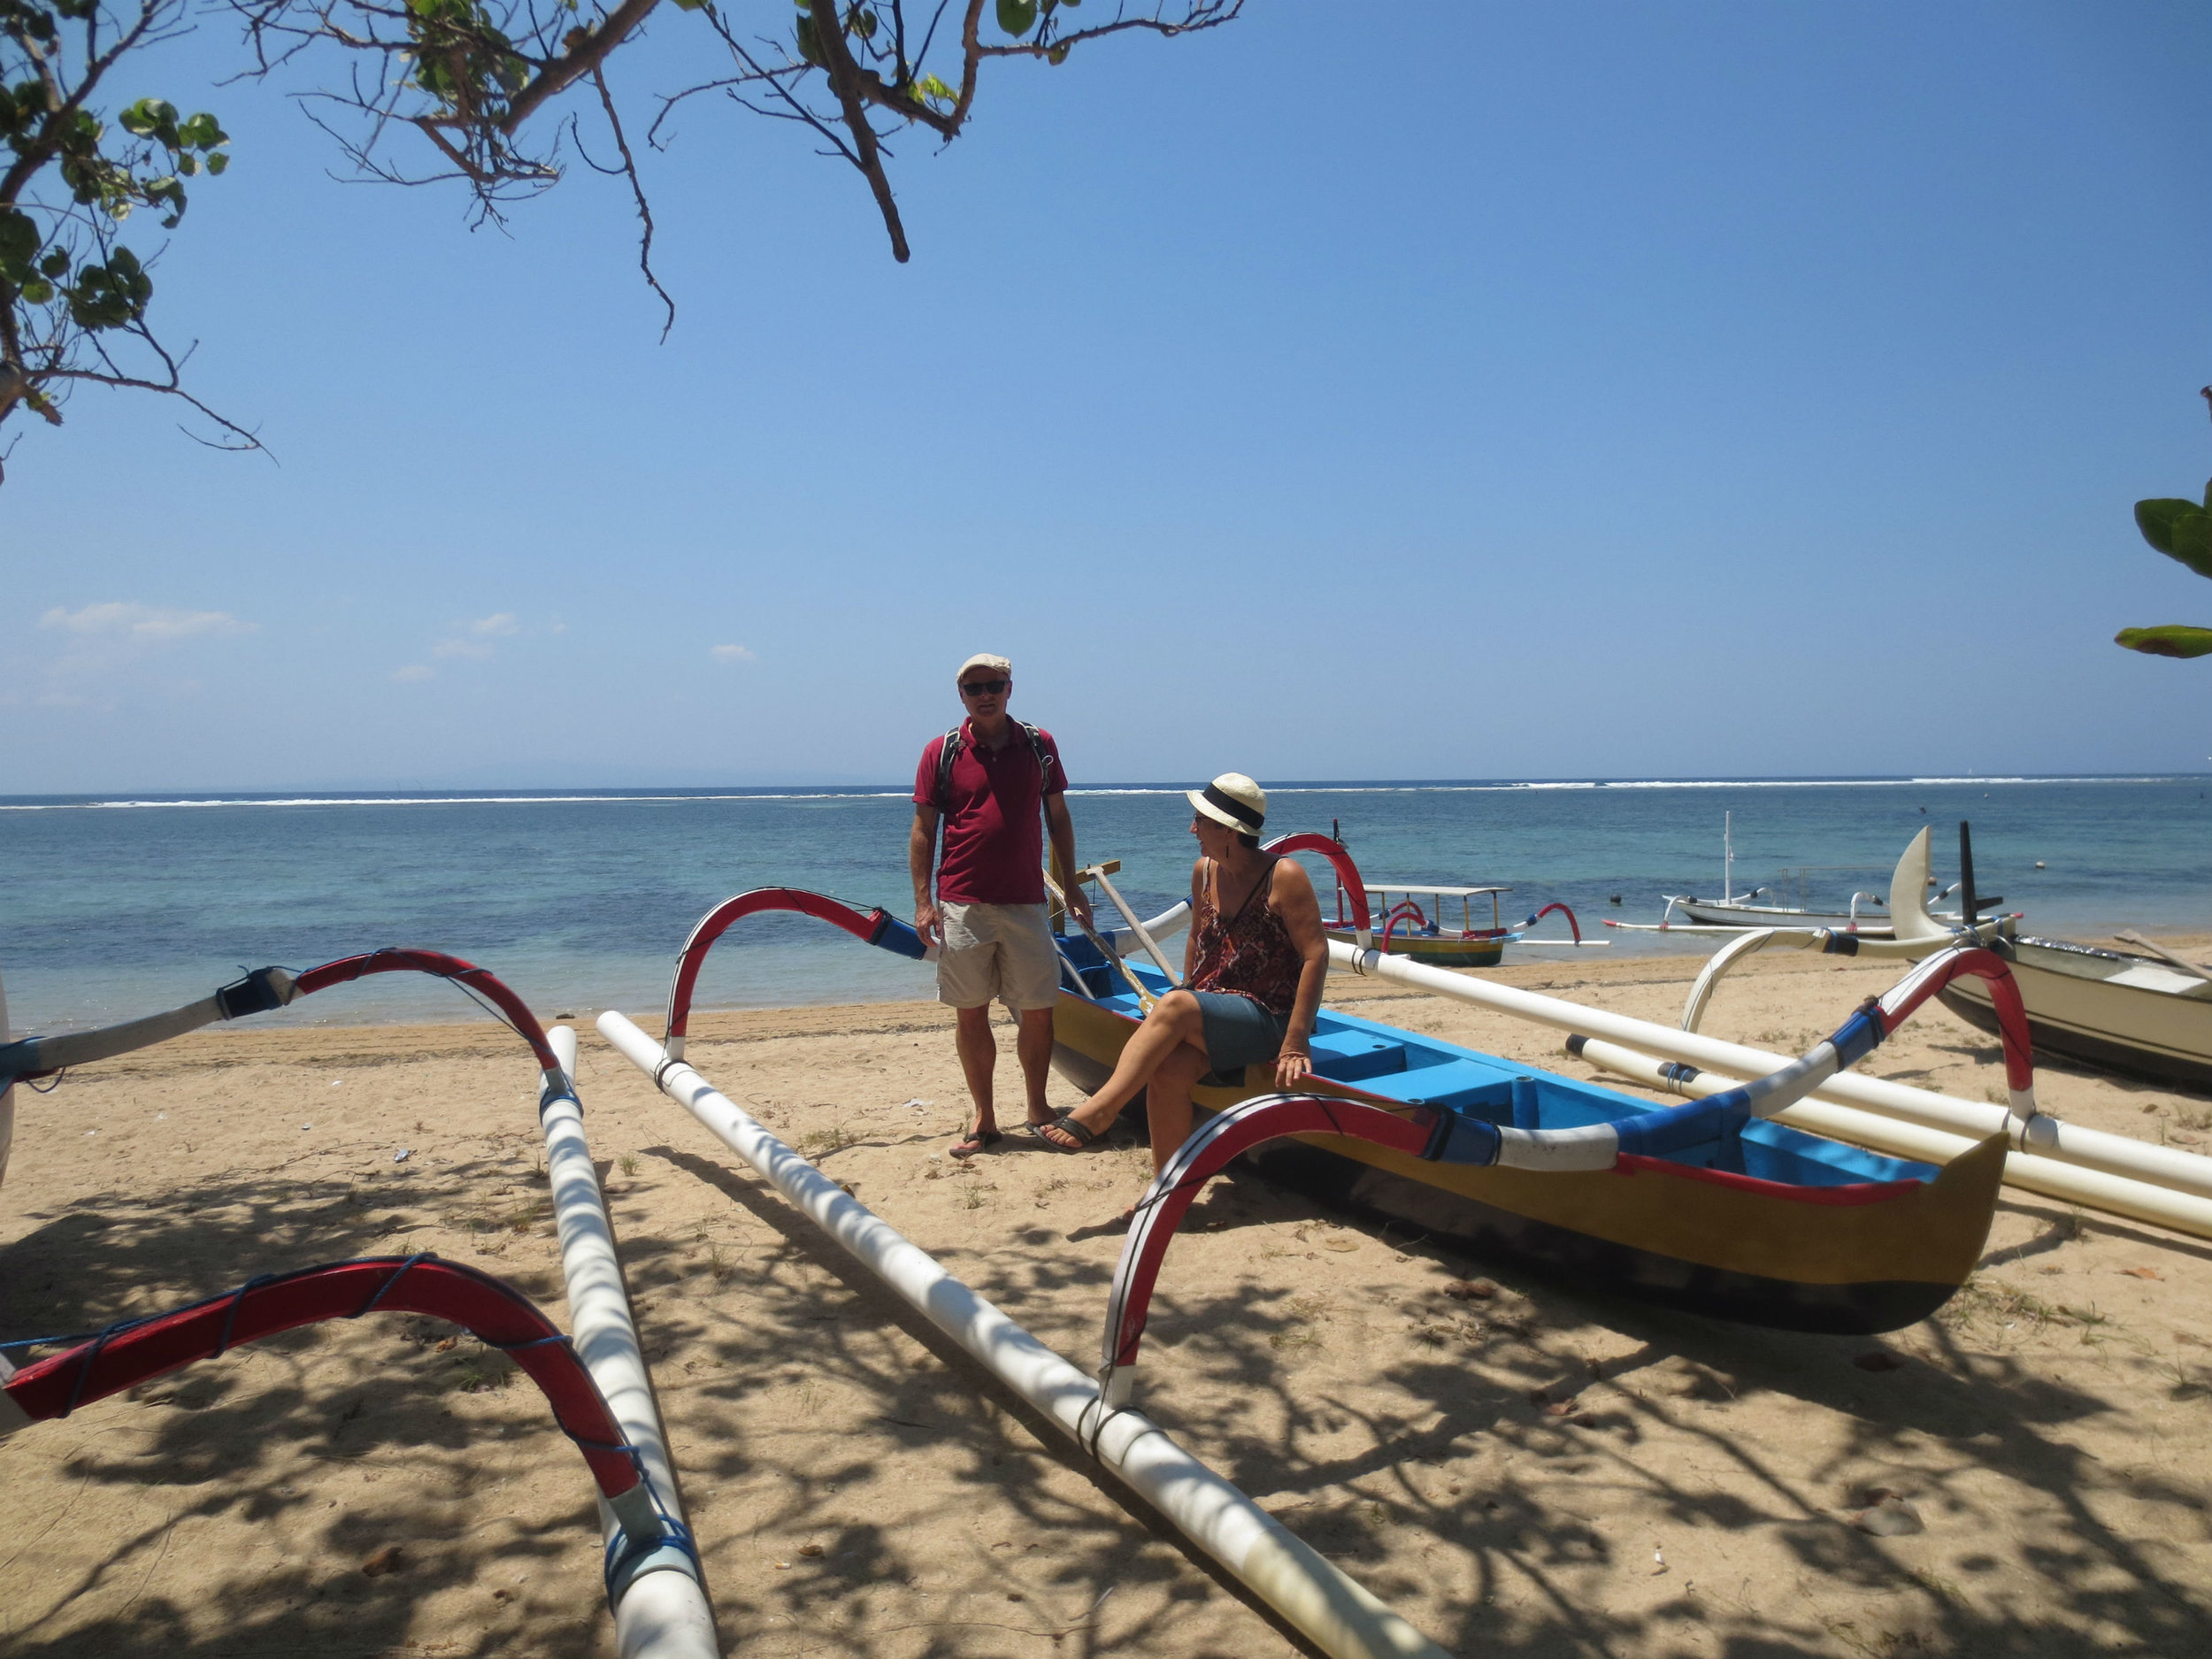 Jukungs on the beach in Sanur